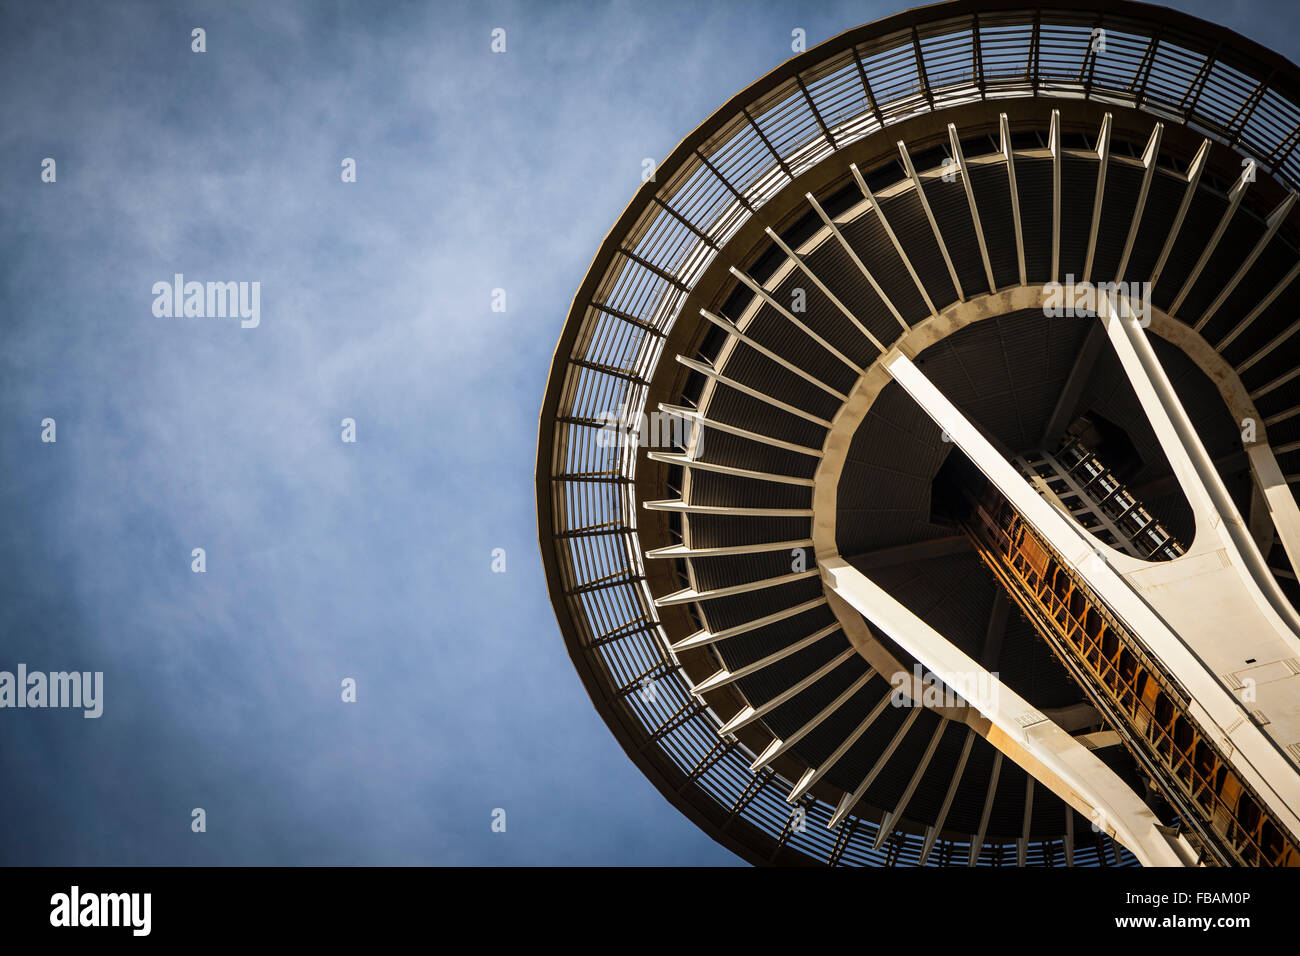 The Space Needle, in Seattle, Washington. - Stock Image